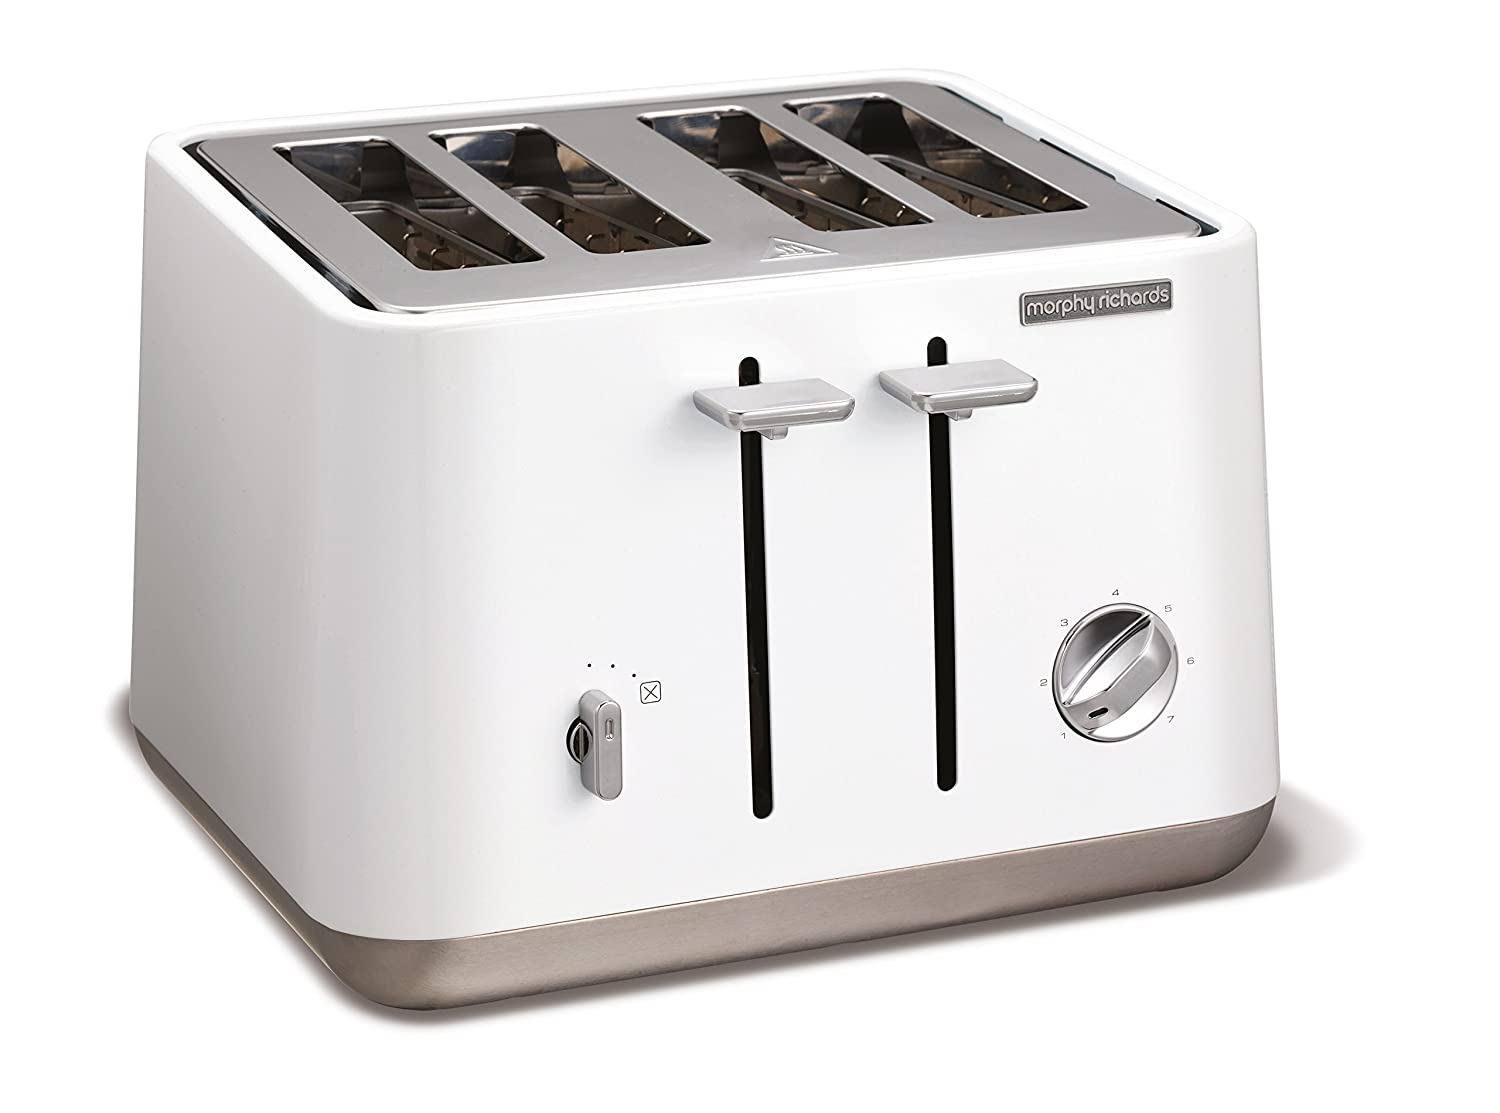 morphy richards  aspect stainless steel four slice toaster  - morphy richards  aspect stainless steel four slice toaster  whiteamazoncouk kitchen  home